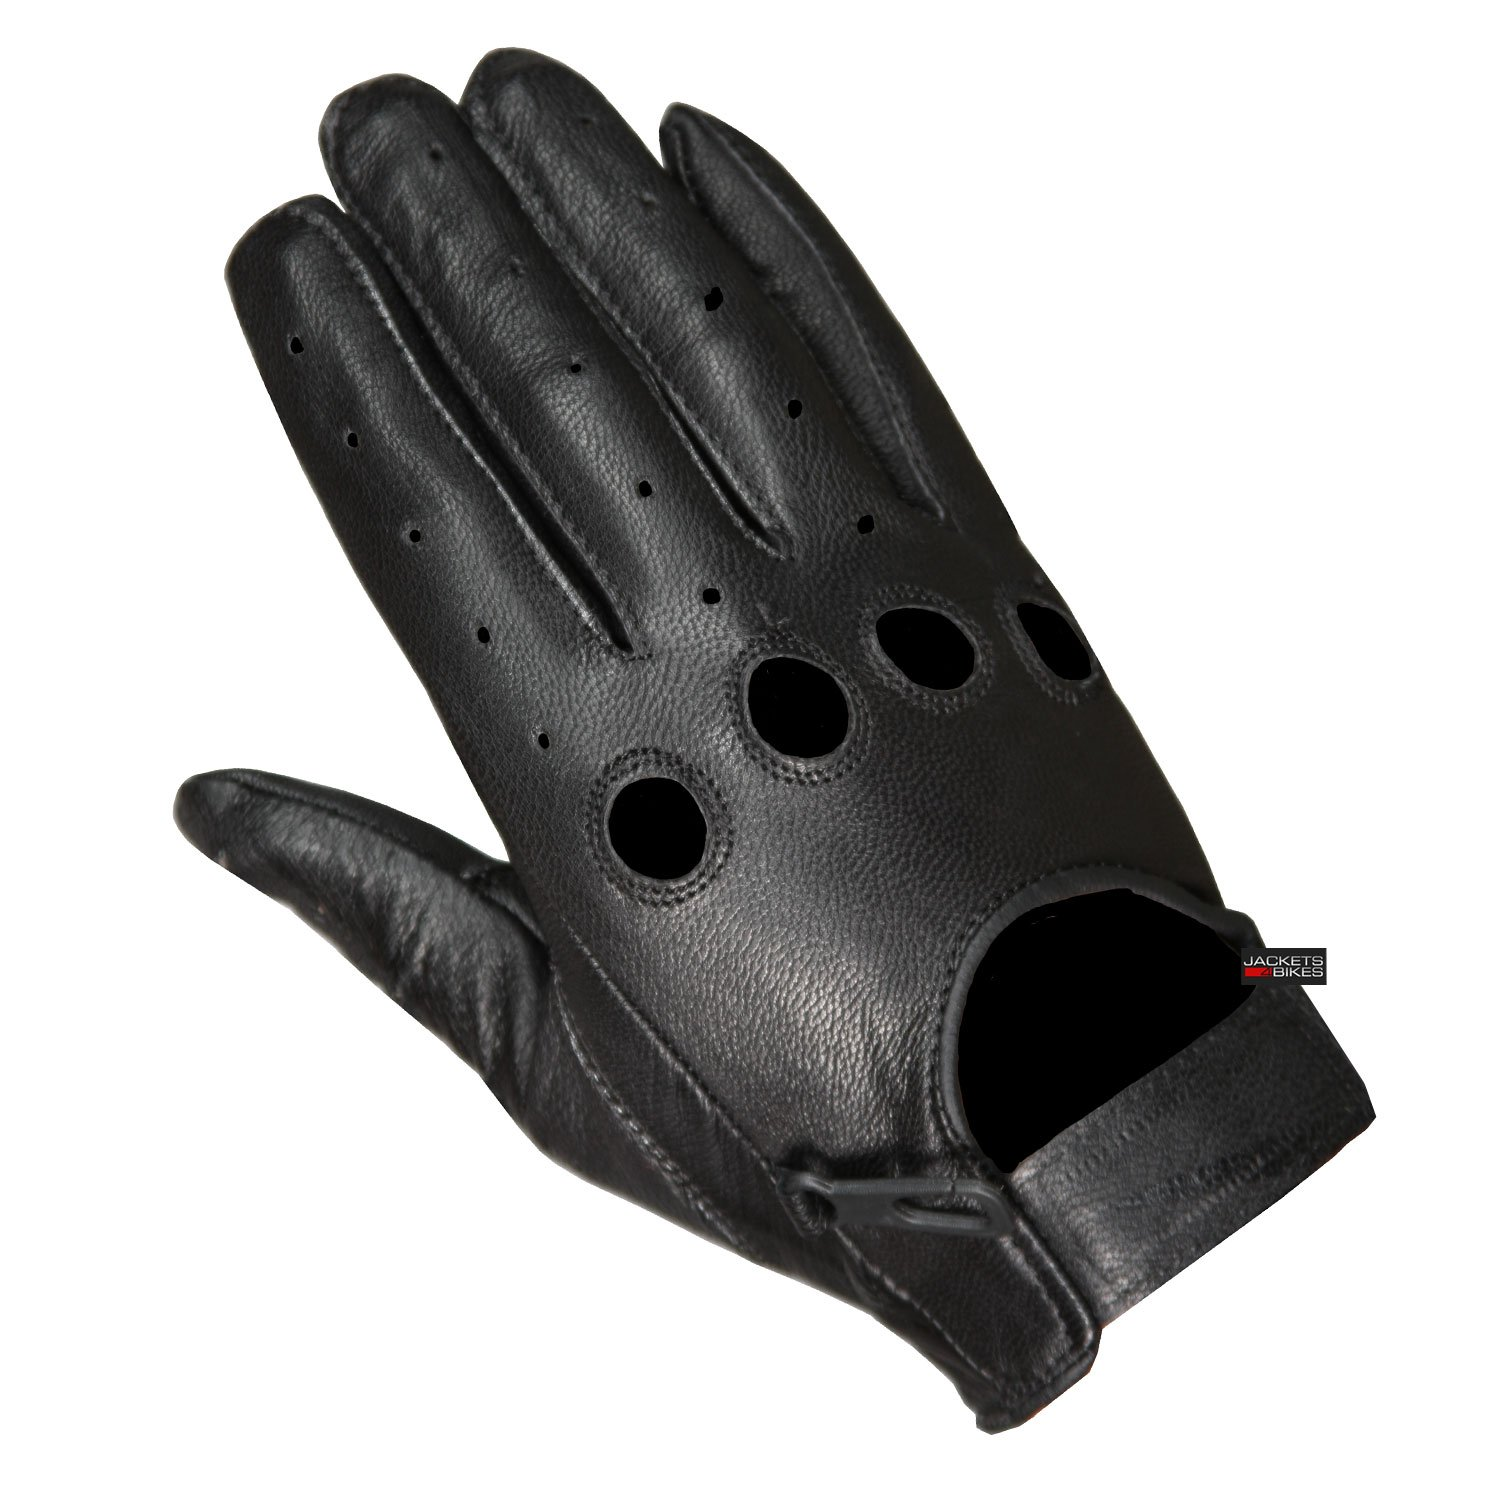 New Biker Police Leather Motorcycle Riding Ventilation Driving Gloves Black L by Jackets 4 Bikes